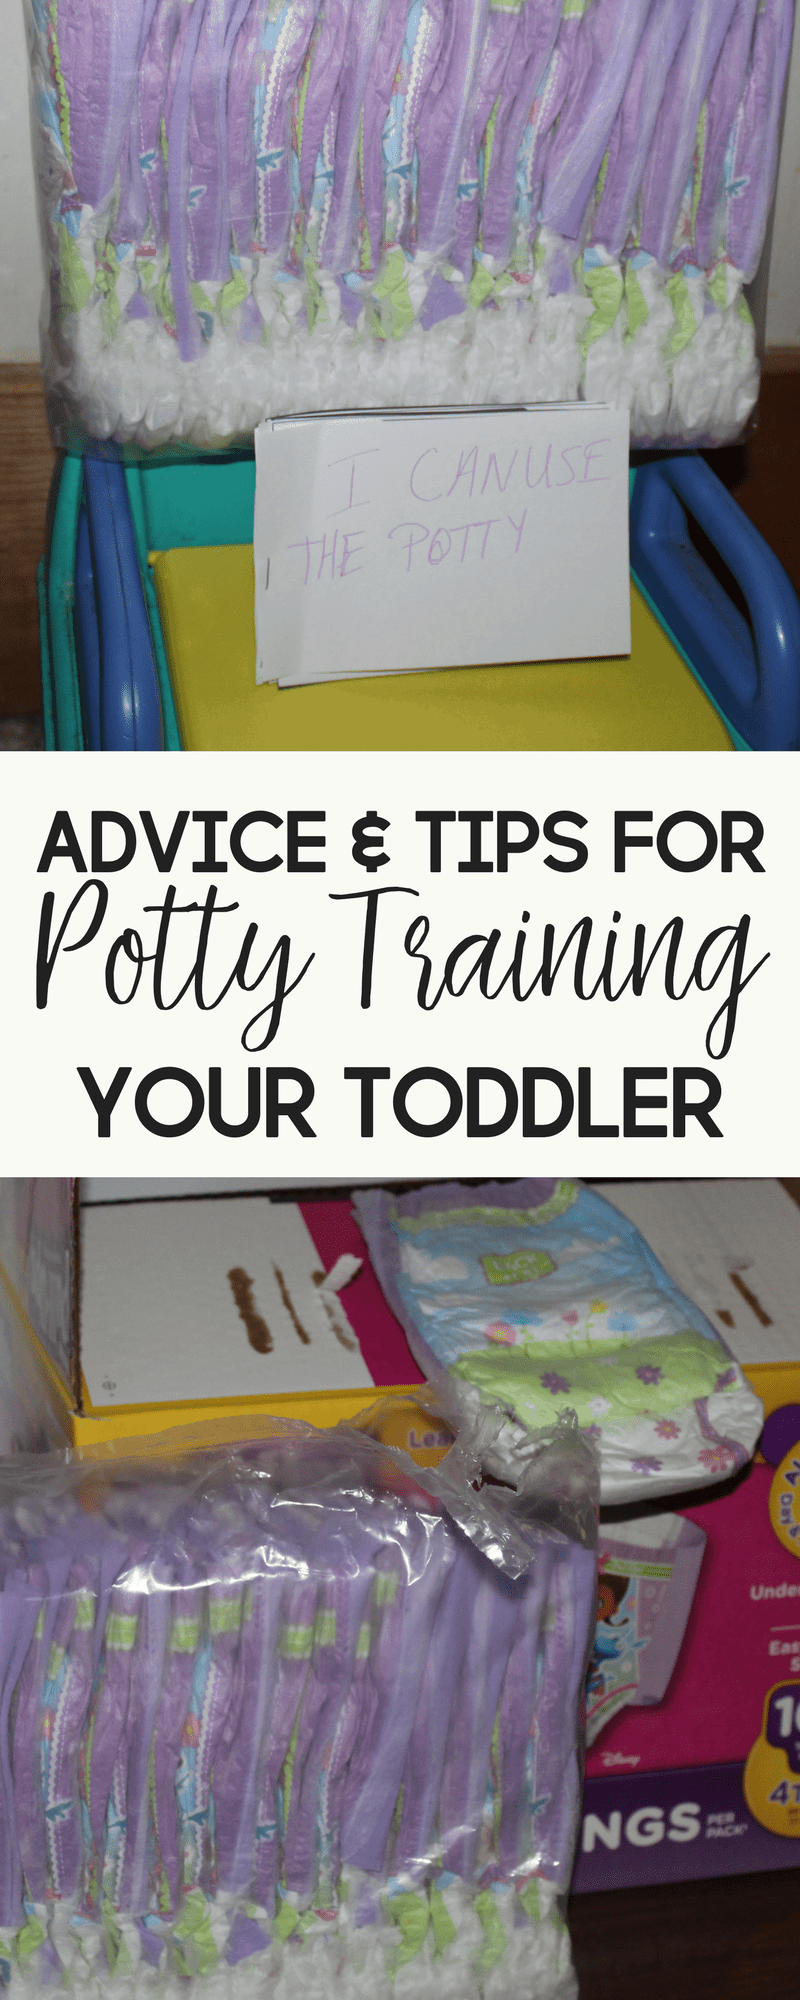 Advice and Tips for How to Potty Train Your Toddler 6